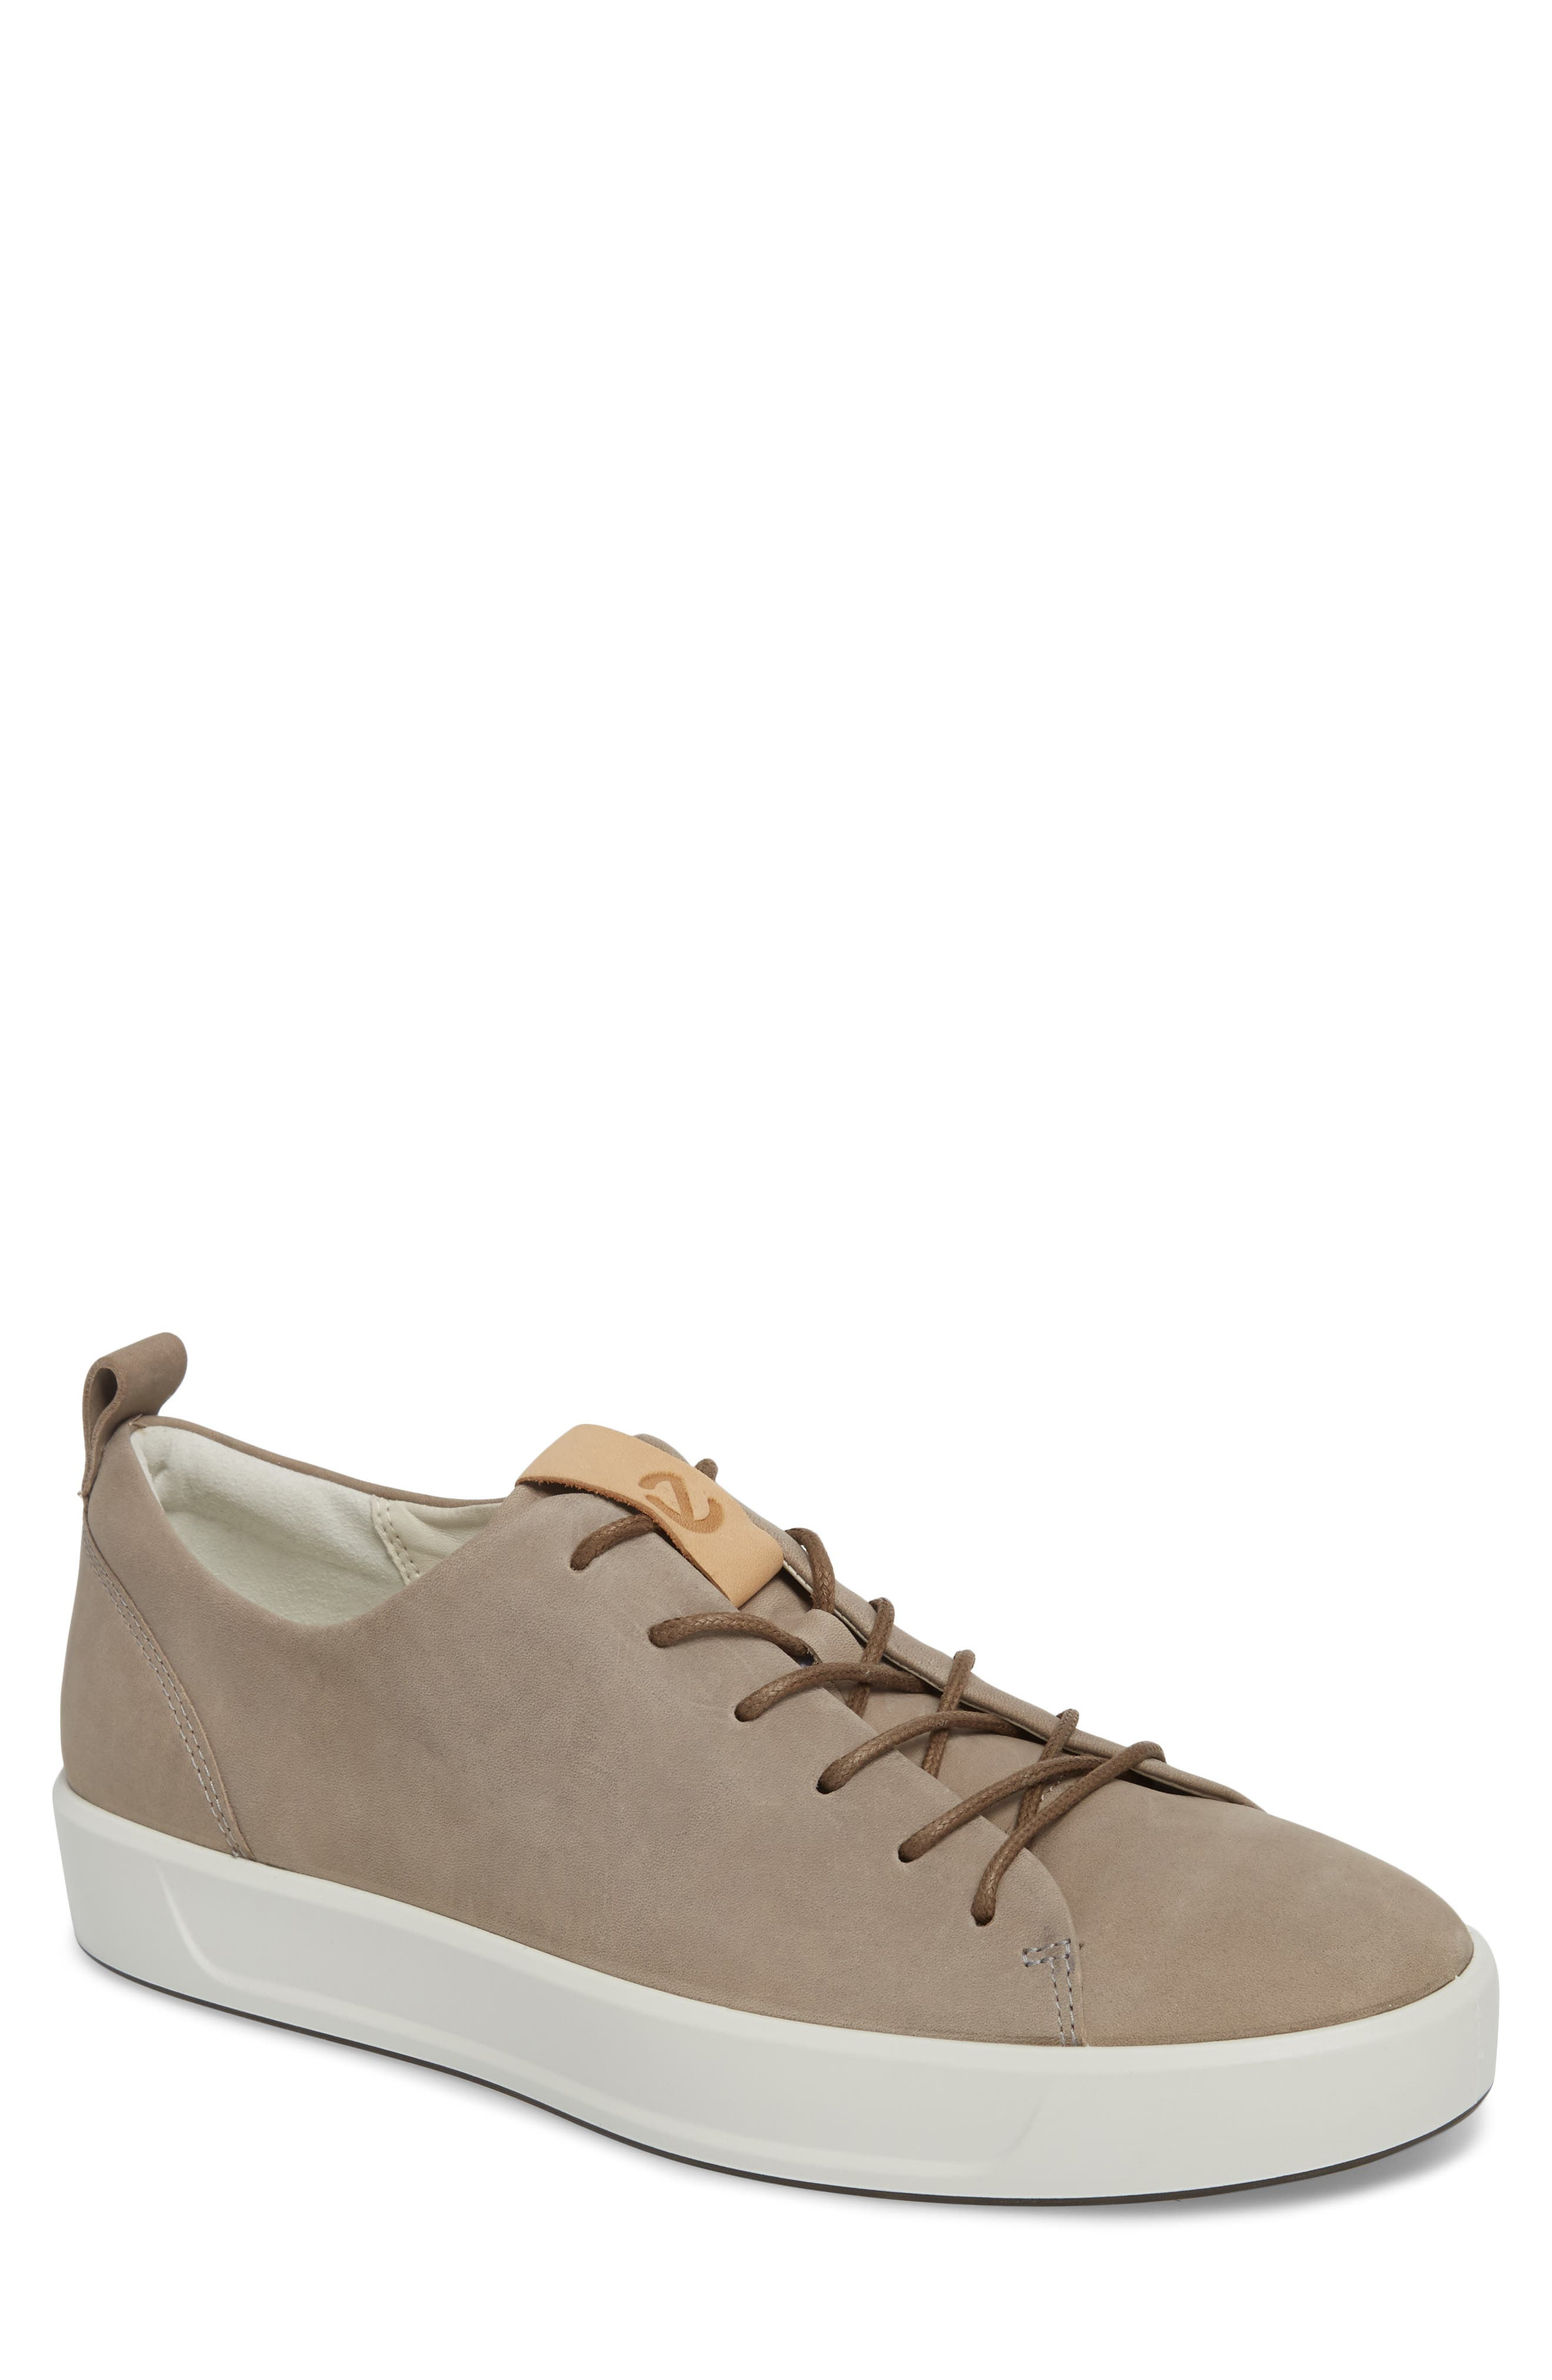 Navy leather 'Soft 8' trainers sale purchase nIhbAKWNW